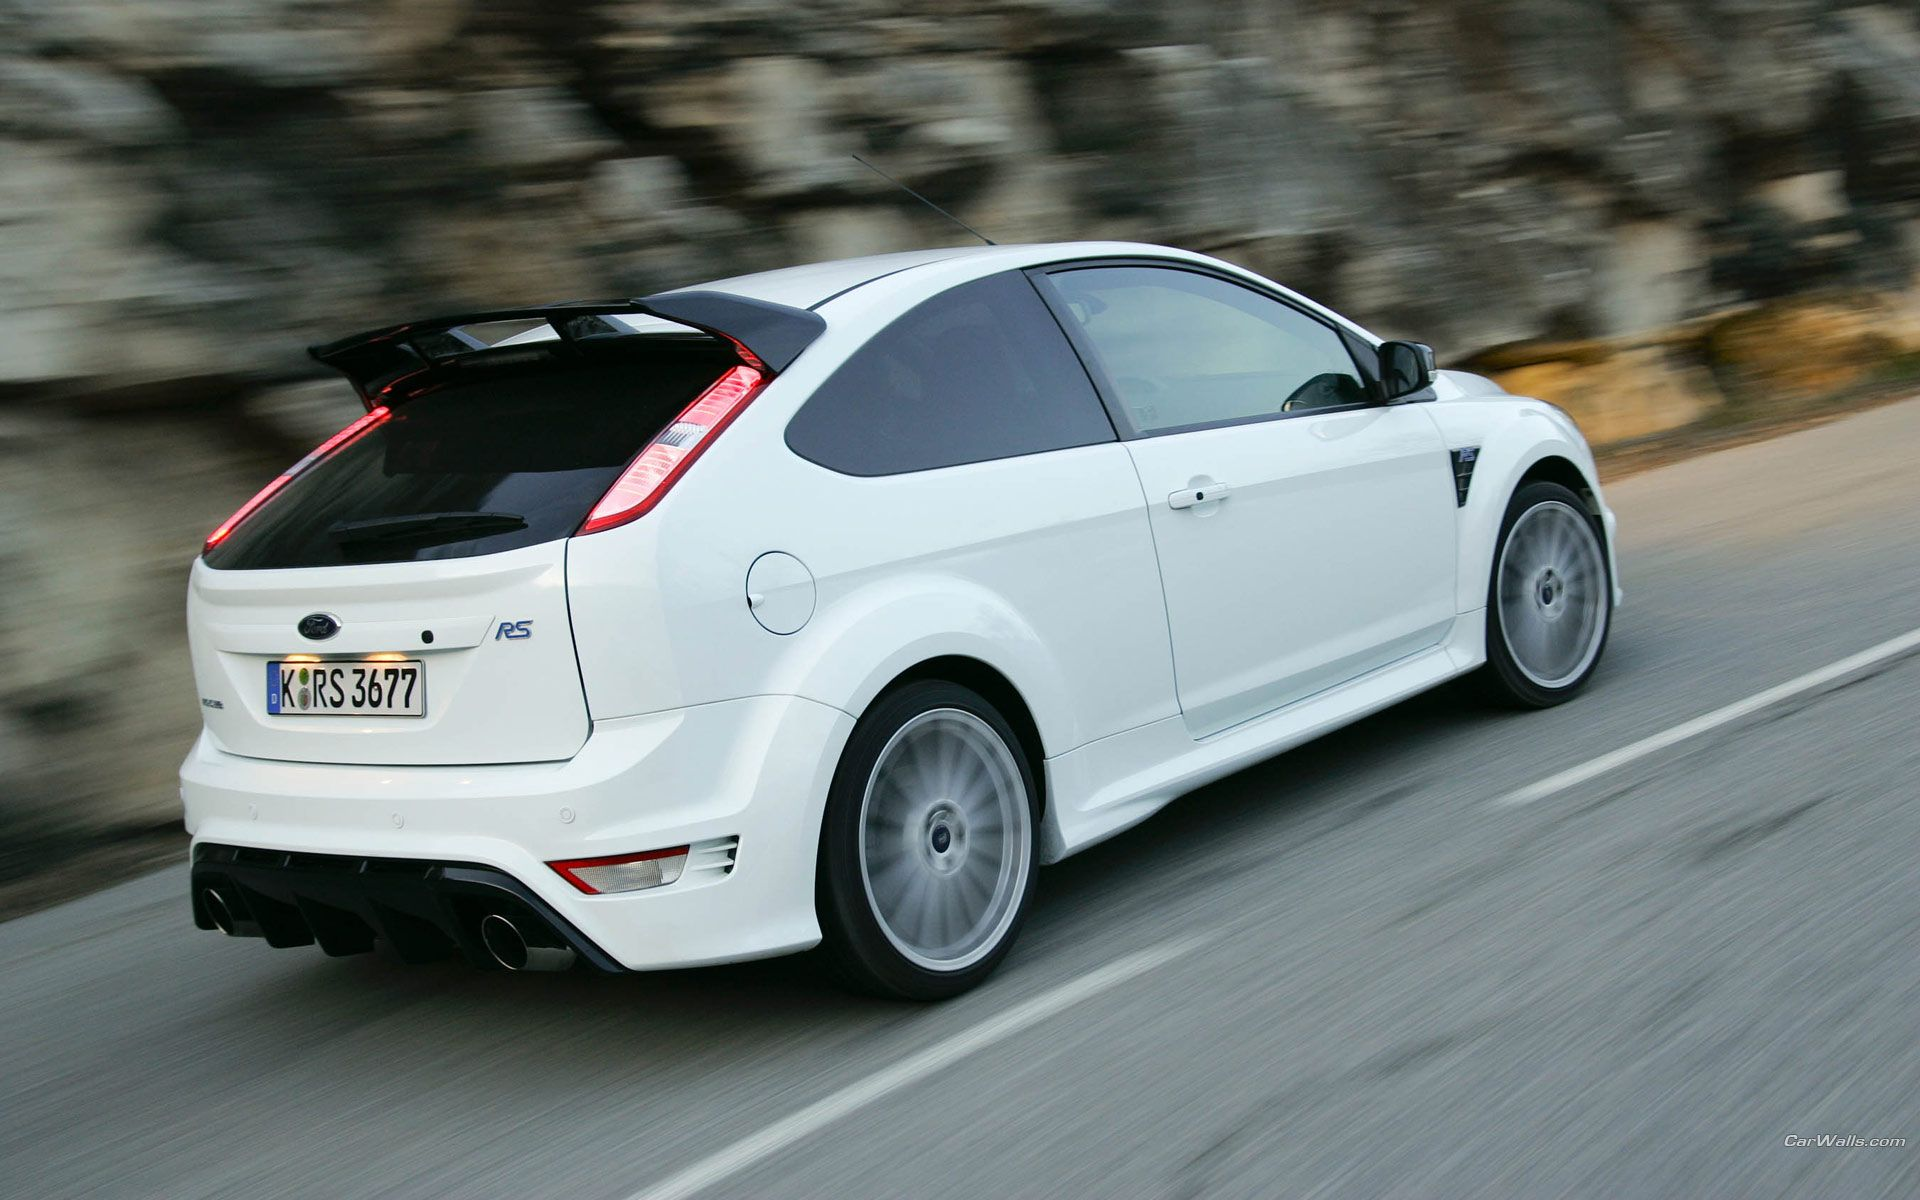 ford focus st electric orange in good company of ford focus rs in ultimate green ford focus st tuning pinterest ford focus focus rs and ford